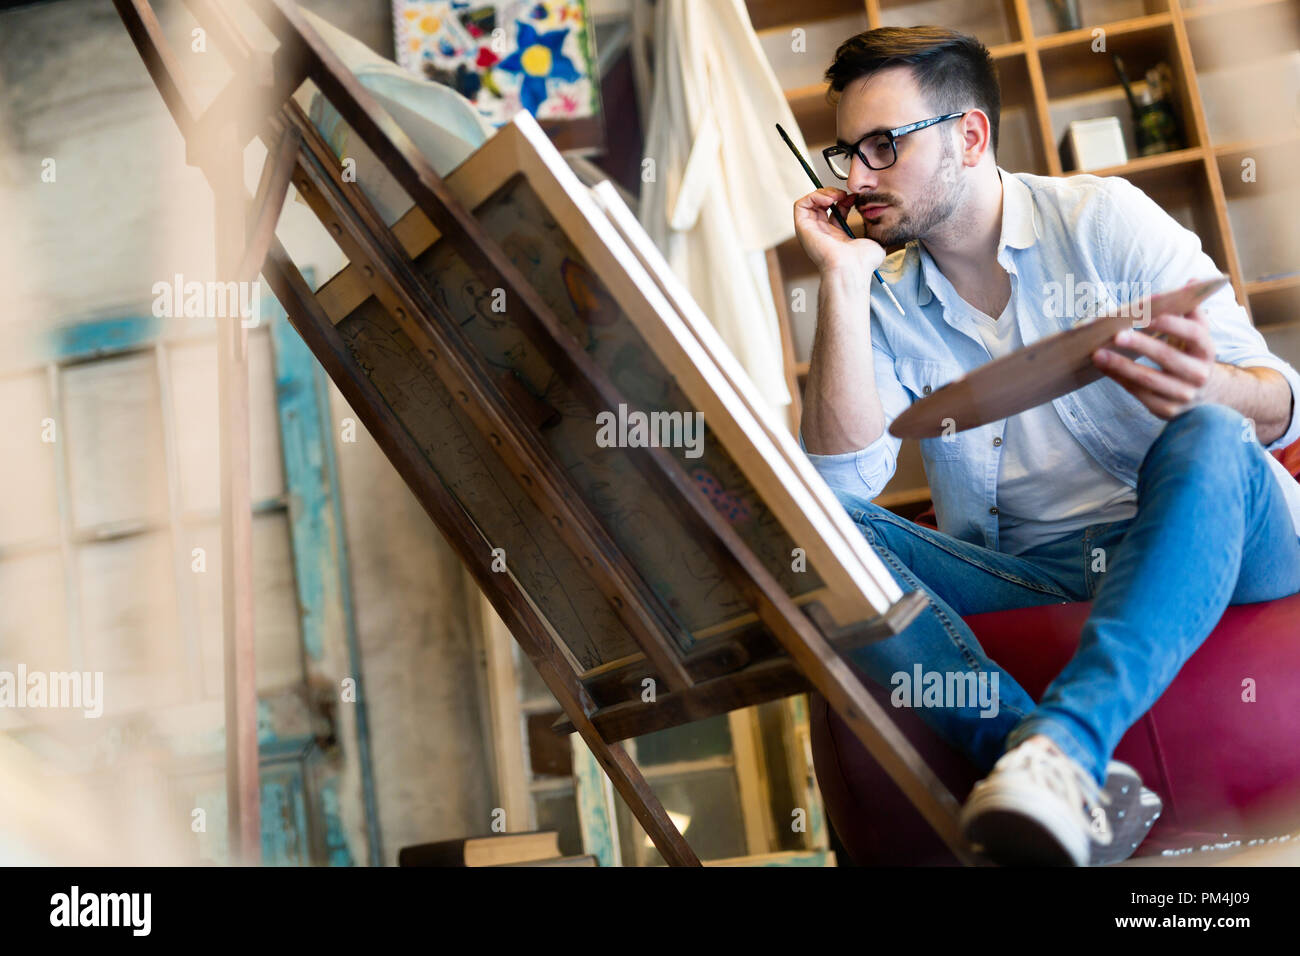 Portrait Of Male Artist Working On Painting In Studio - Stock Image